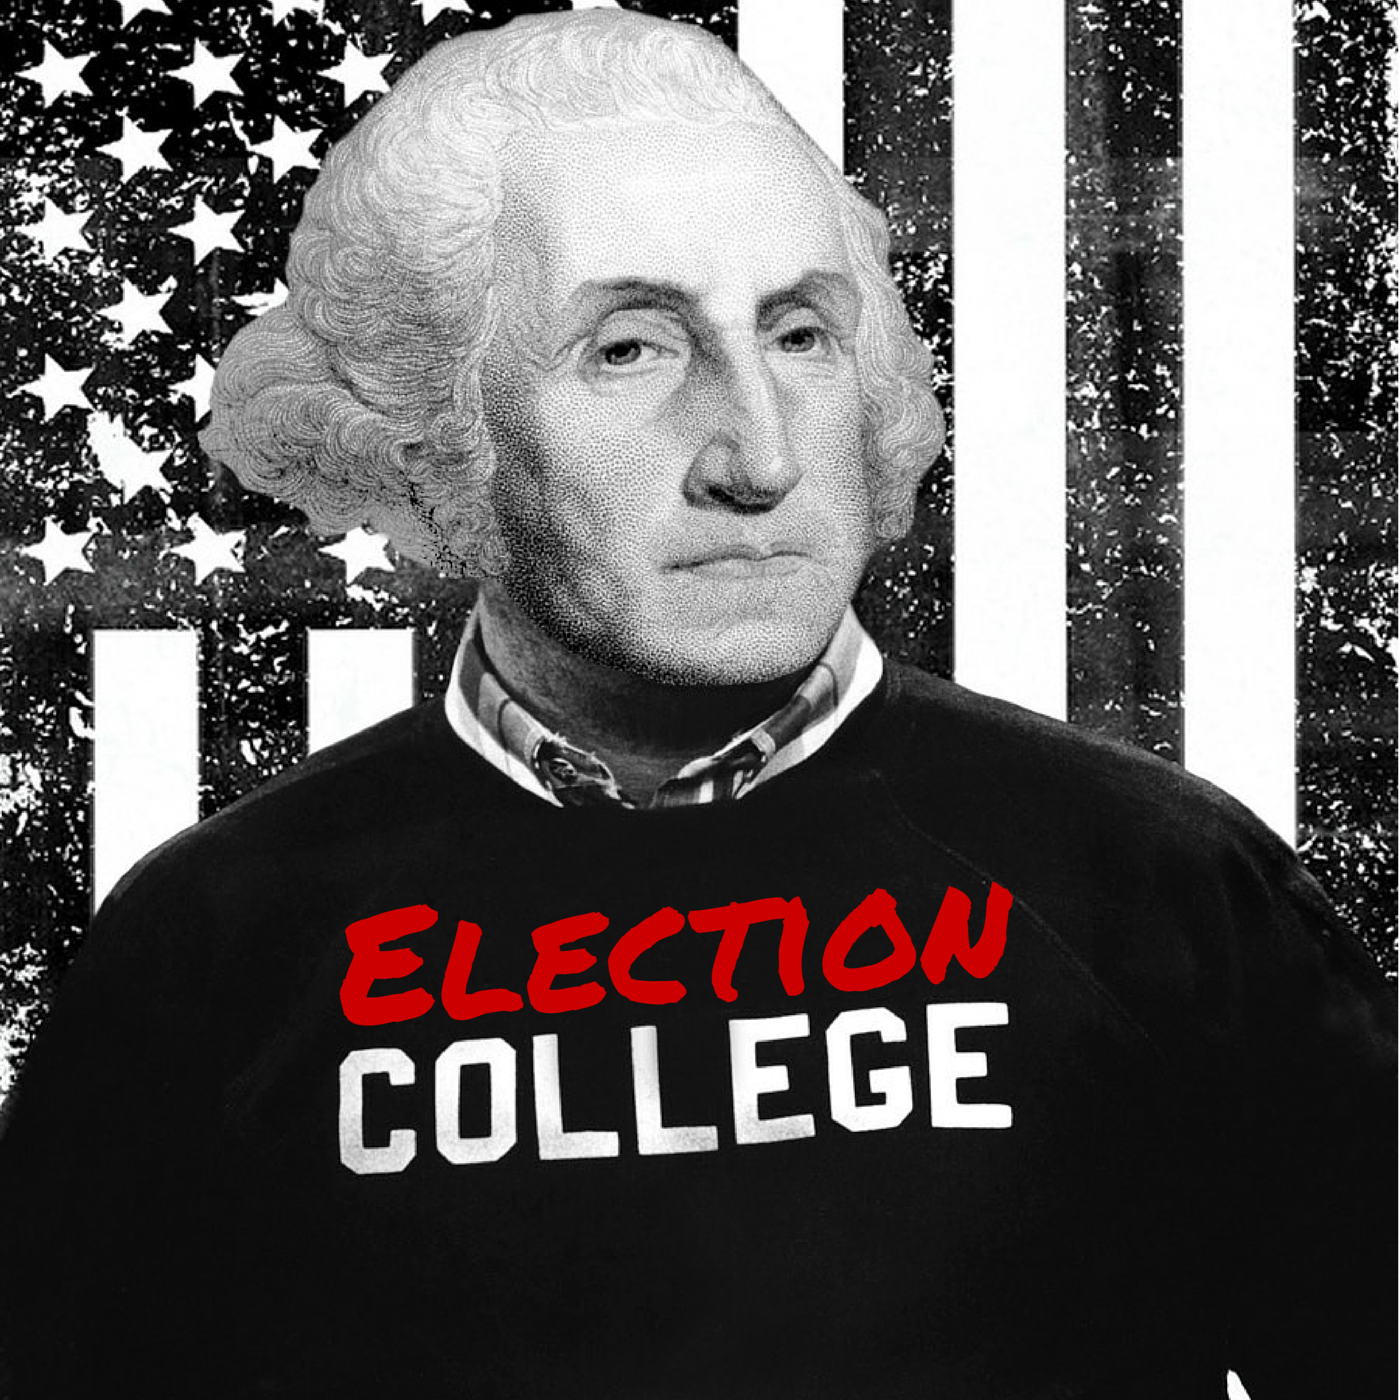 The Great Depression Didn't Make It Easy On Hoover - Election fo 1932 | Episode #050 | Election College: United States Presidential Election History